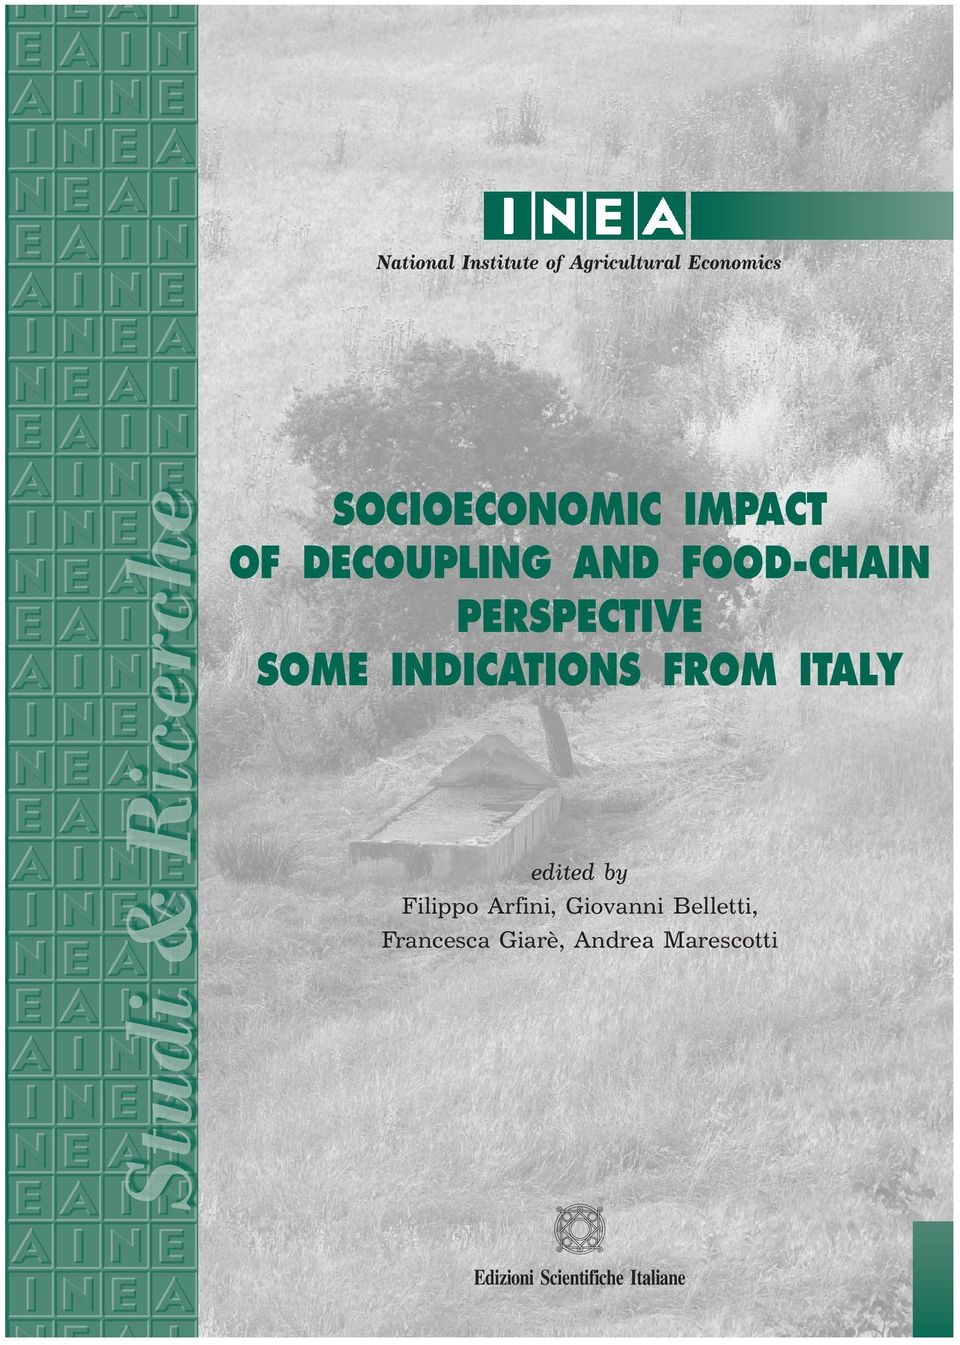 633/1972) 22,00 National Institute of Agricultural Economics SOCIOECONOMIC IMPACT OF DECOUPLING AND FOOD-CHAIN PERSPECTIVE: SOME INDICATIONS FROM ITALY After the implementation of the Mid Term Review